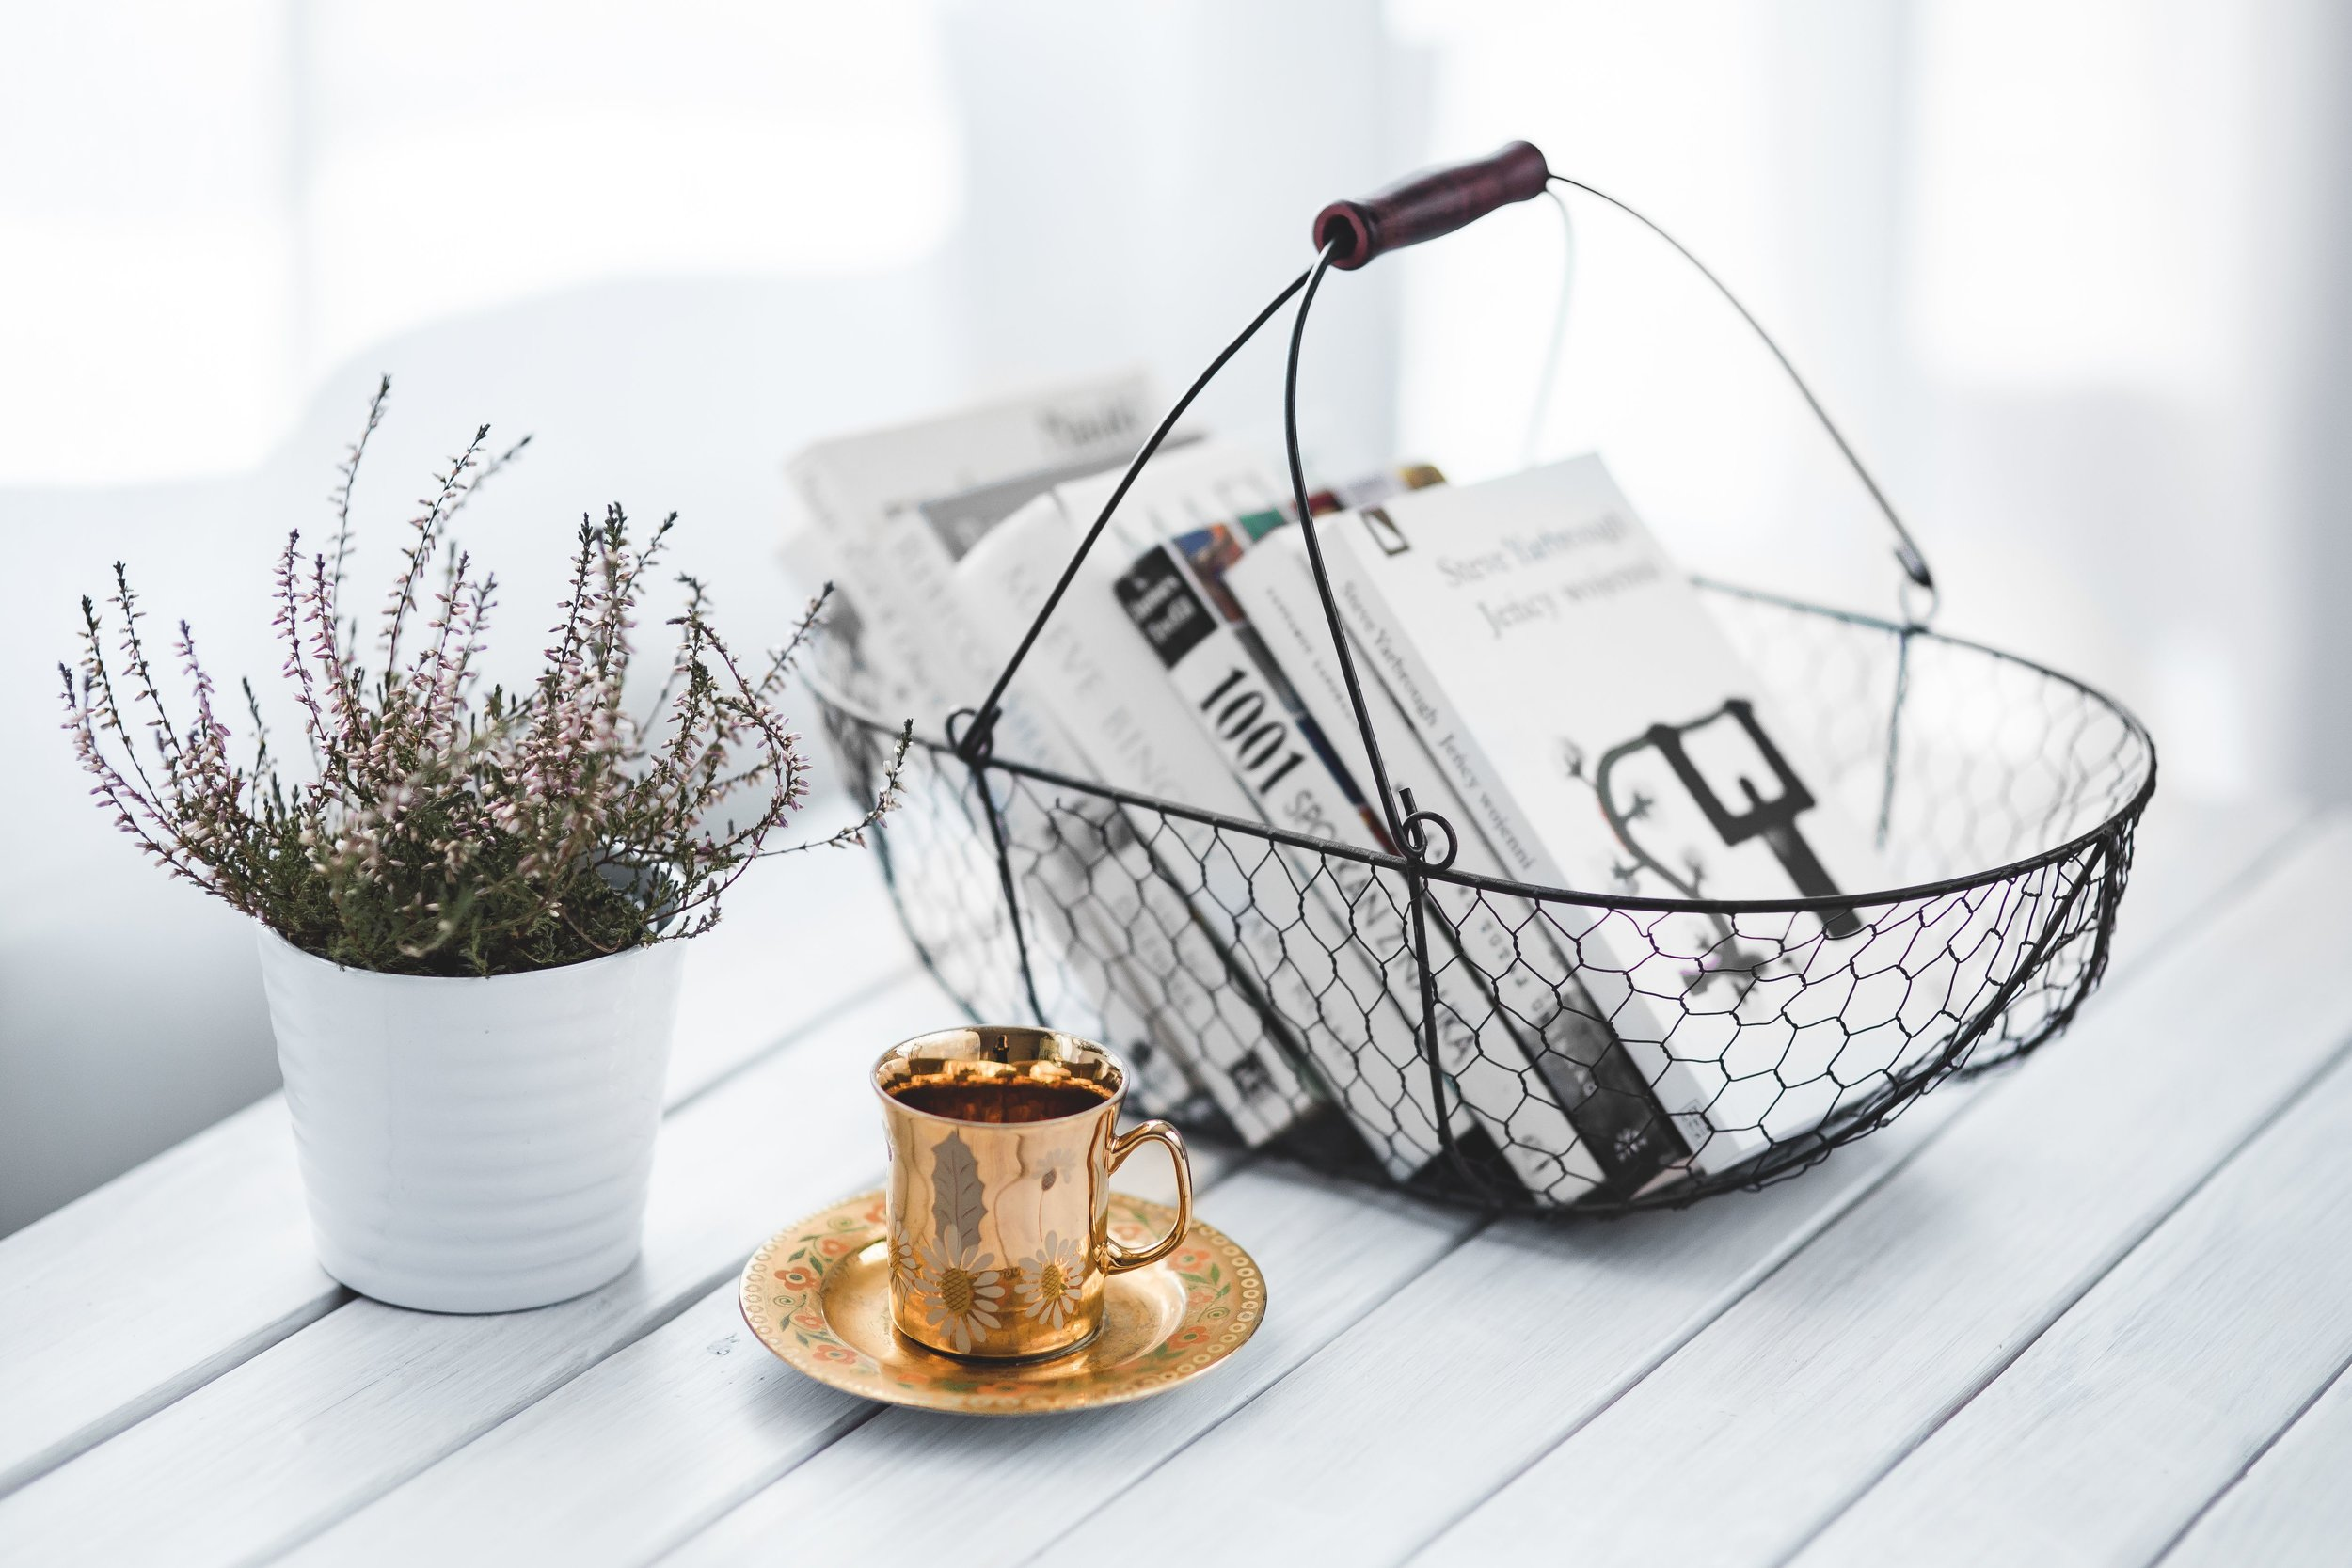 kaboompics_Book basket with a plant and coffee.jpg